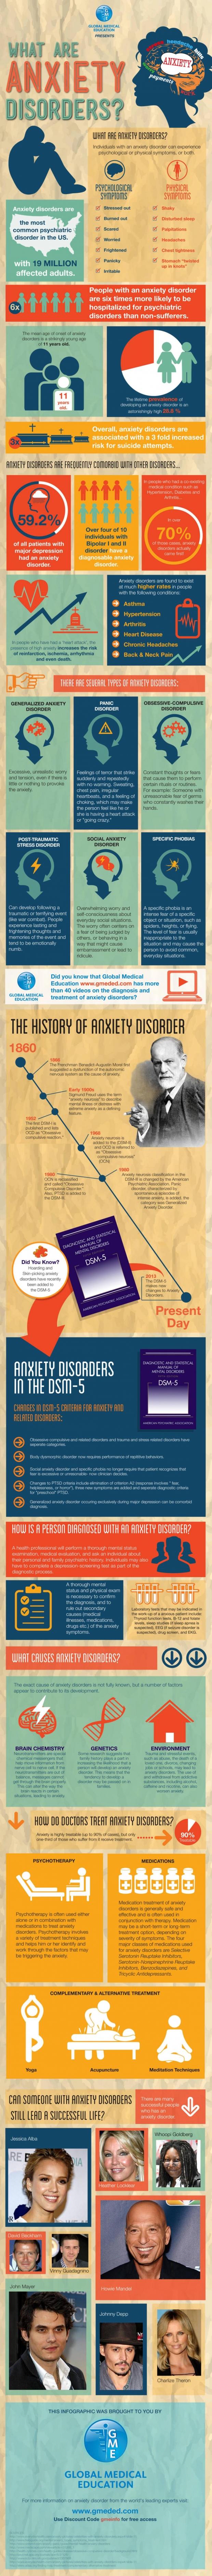 Anxiety-Disorders